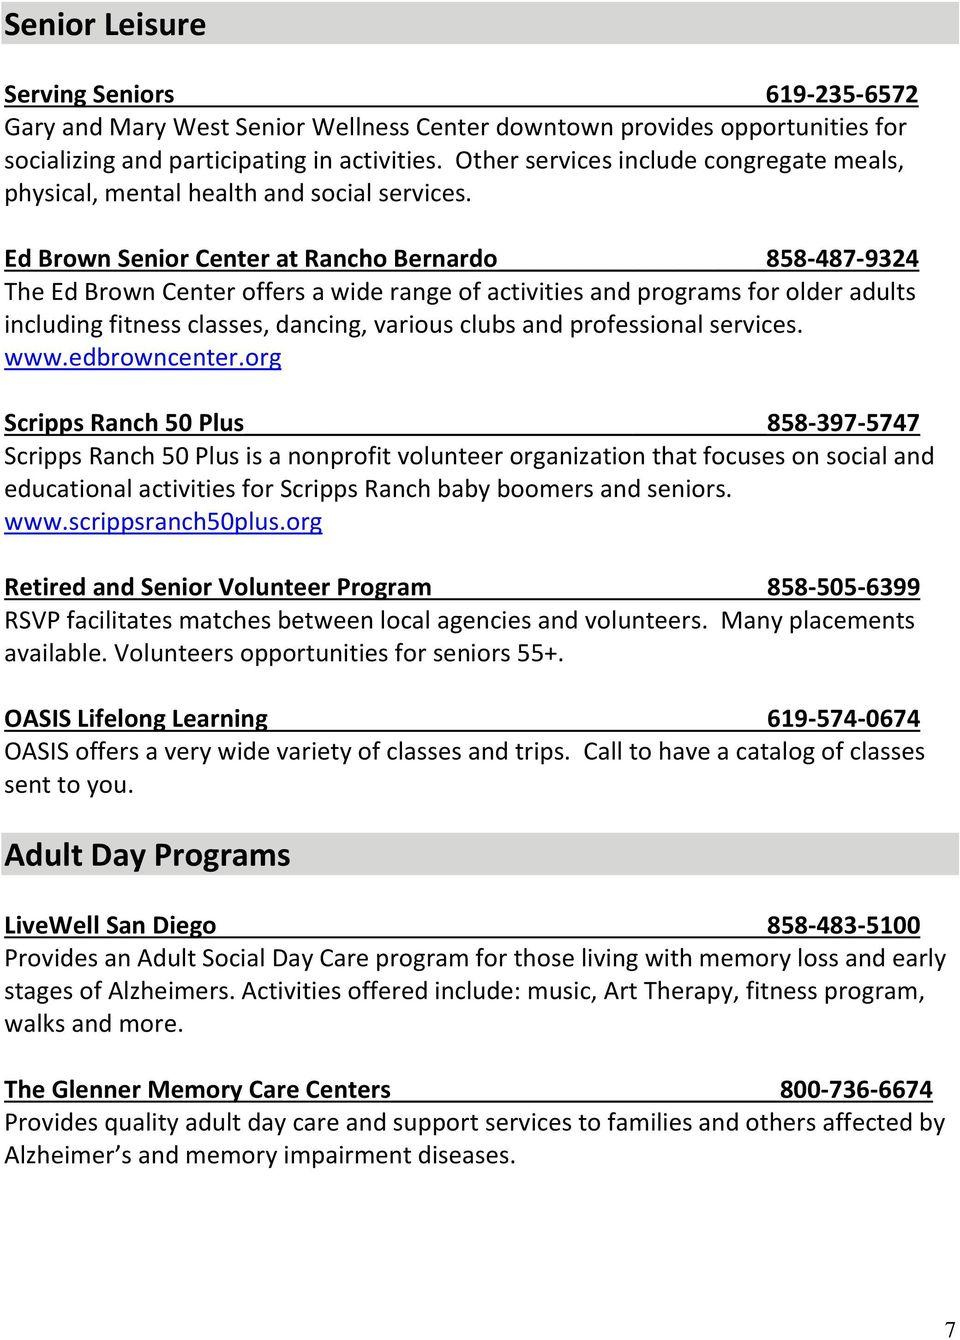 Ed Brown Senior Center at Rancho Bernardo 858-487-9324 The Ed Brown Center offers a wide range of activities and programs for older adults including fitness classes, dancing, various clubs and